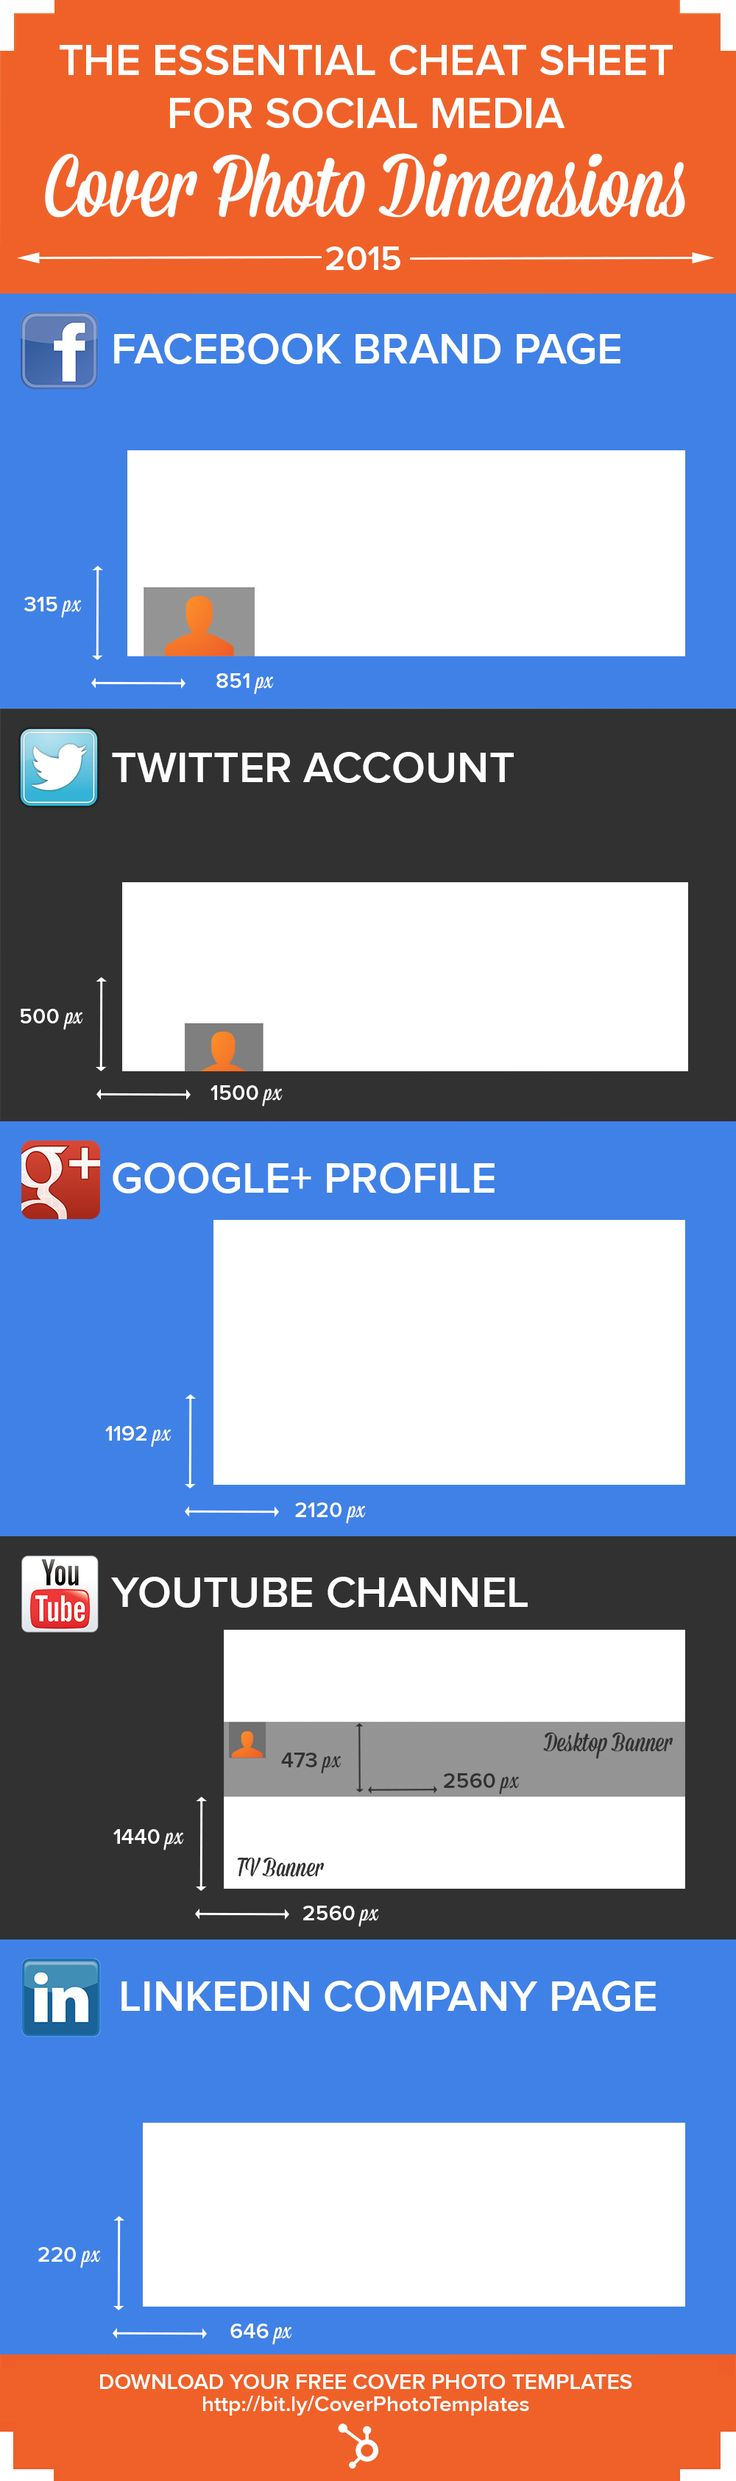 The Essential Cheat Sheet for Social Media Cover Photo Dimensions for January 2015